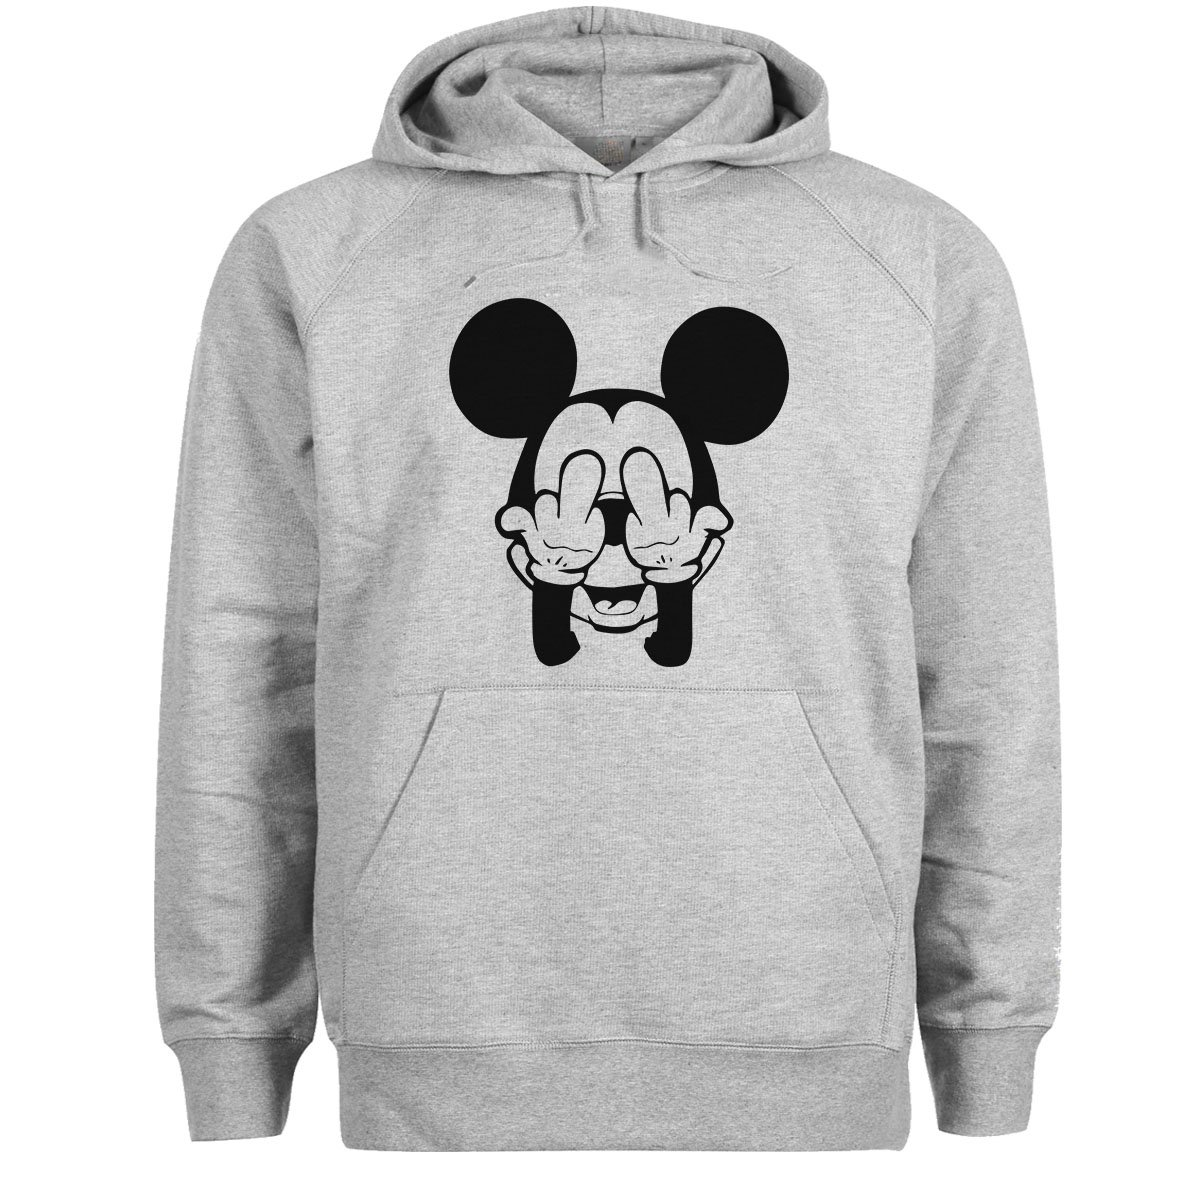 Swag Mickey Mouse Trippy Fuck Gris Con Capucha Disney Dope Sudadera OPXZkiu